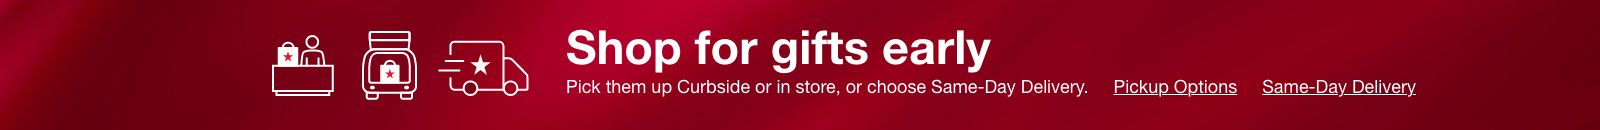 Shop for gifts early